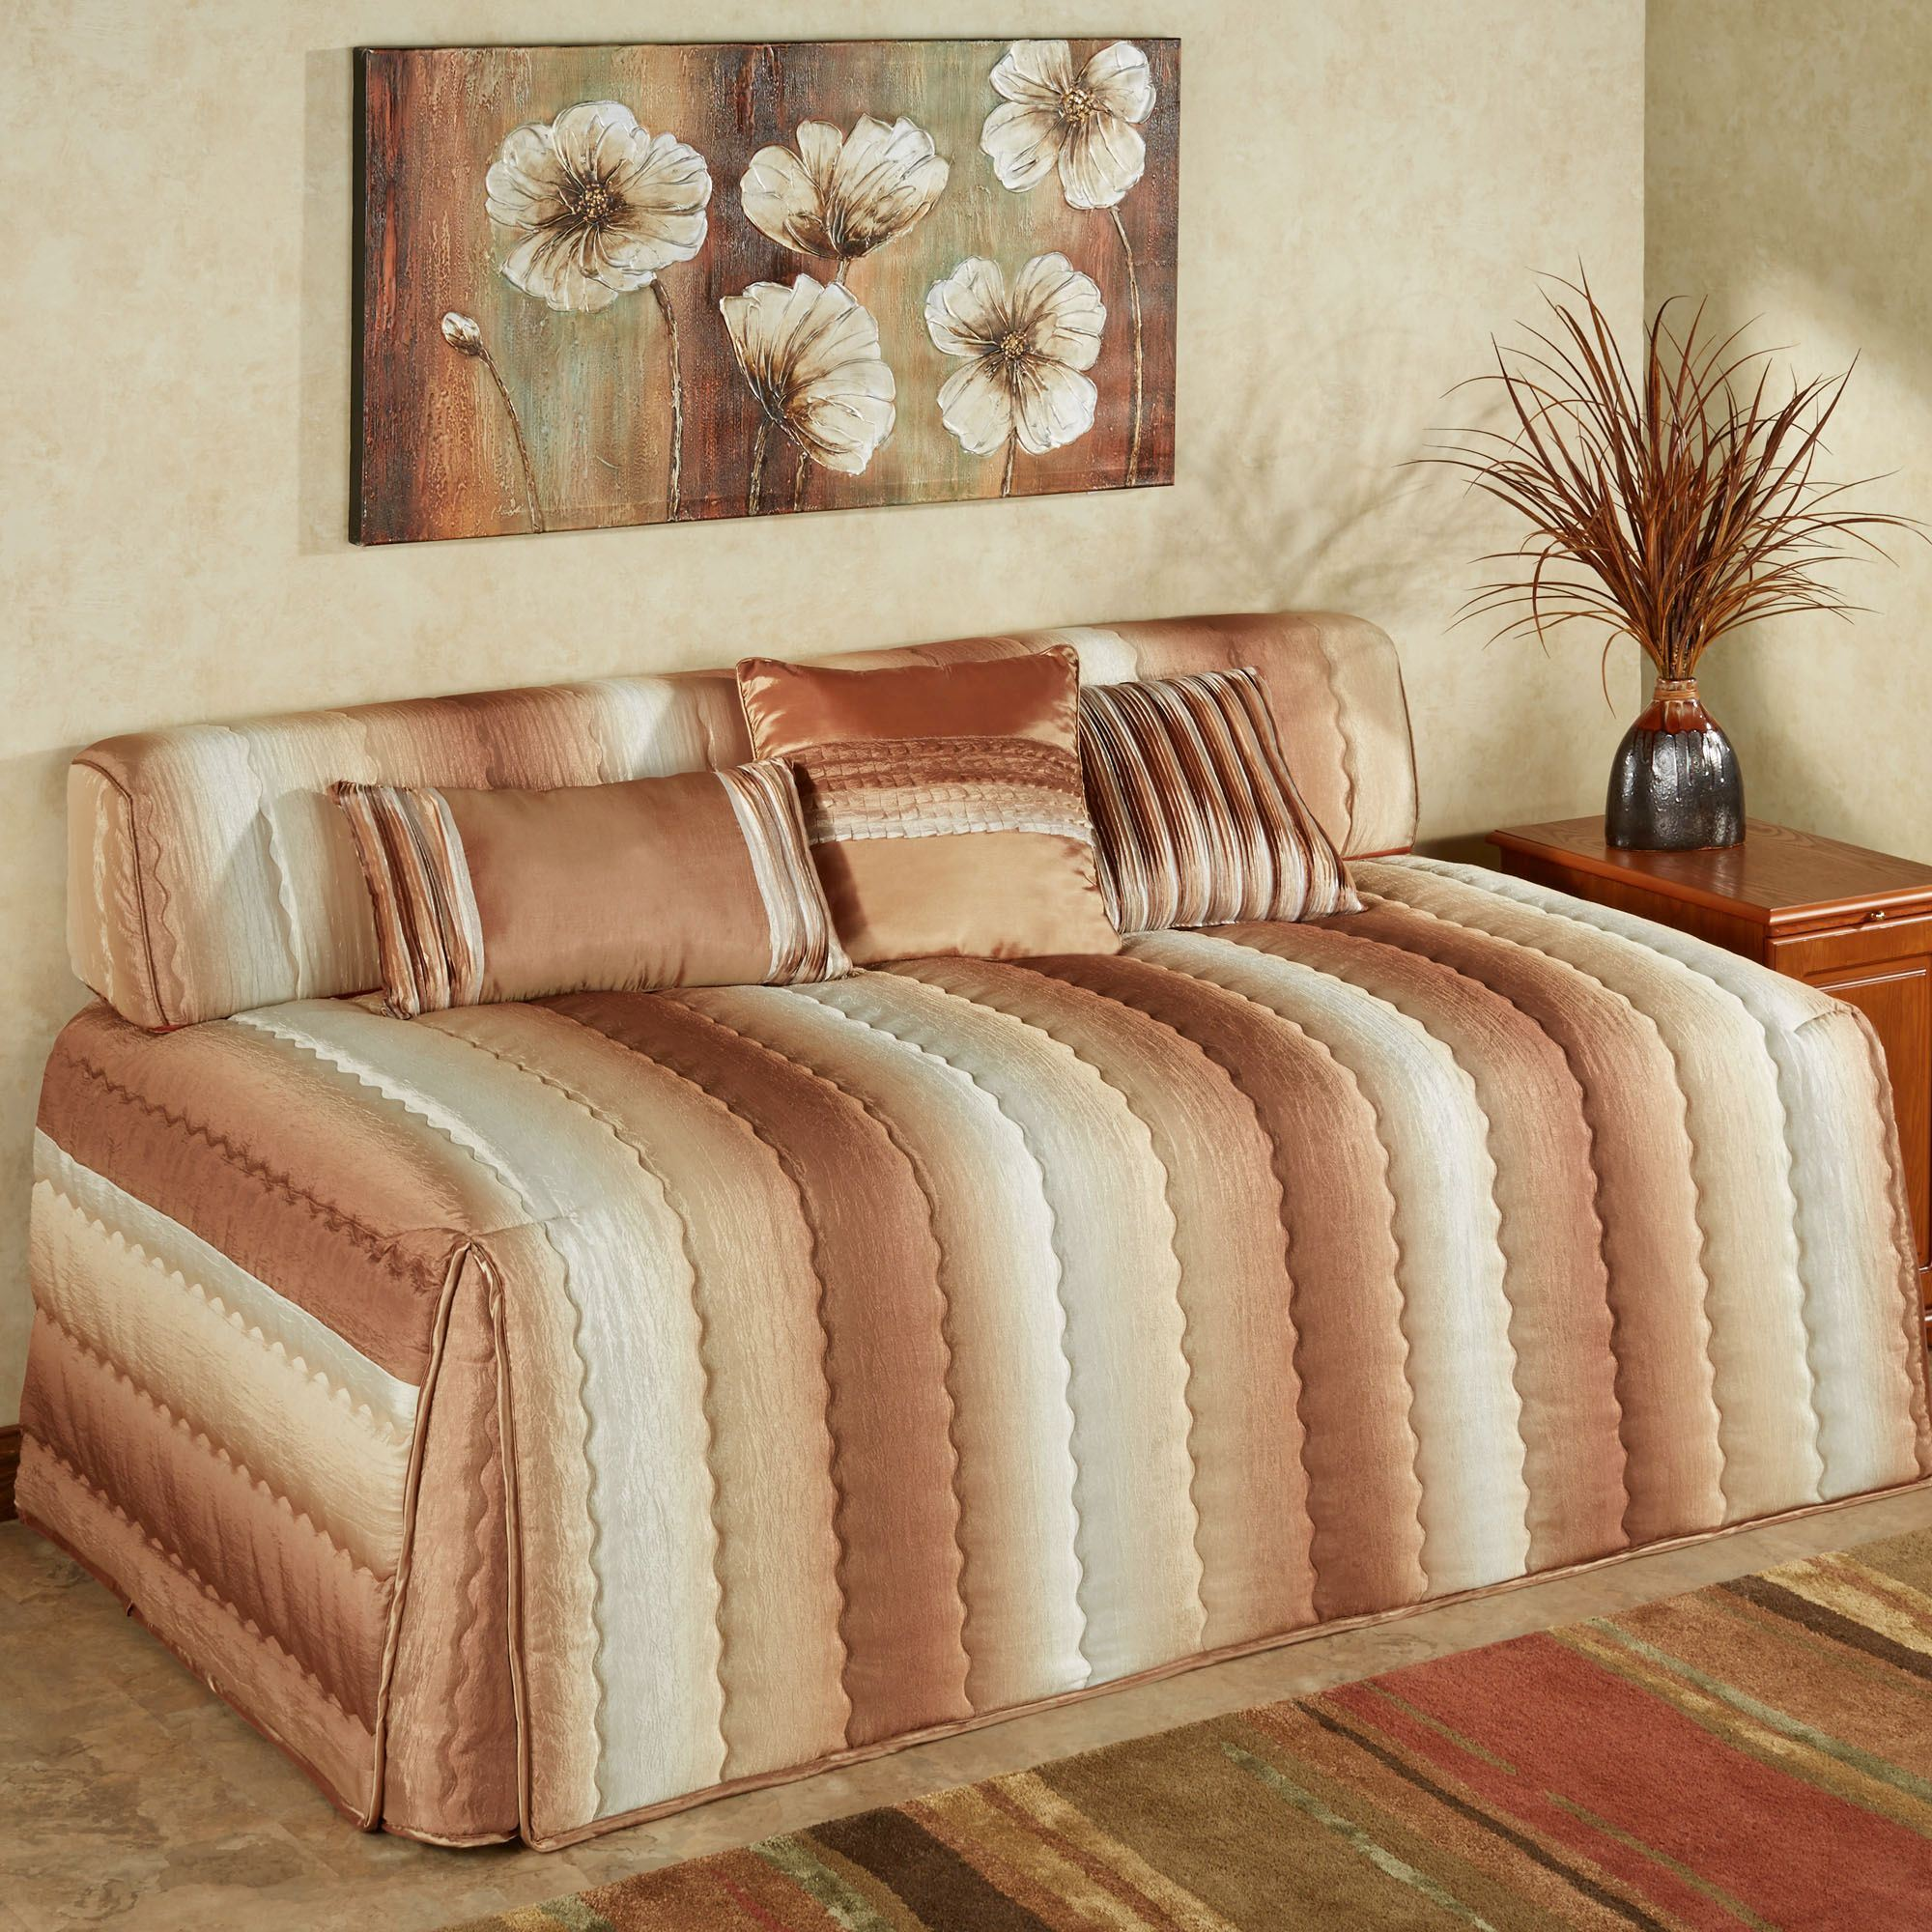 Mirage Hollywood Daybed Cover Sienna Brown Twin